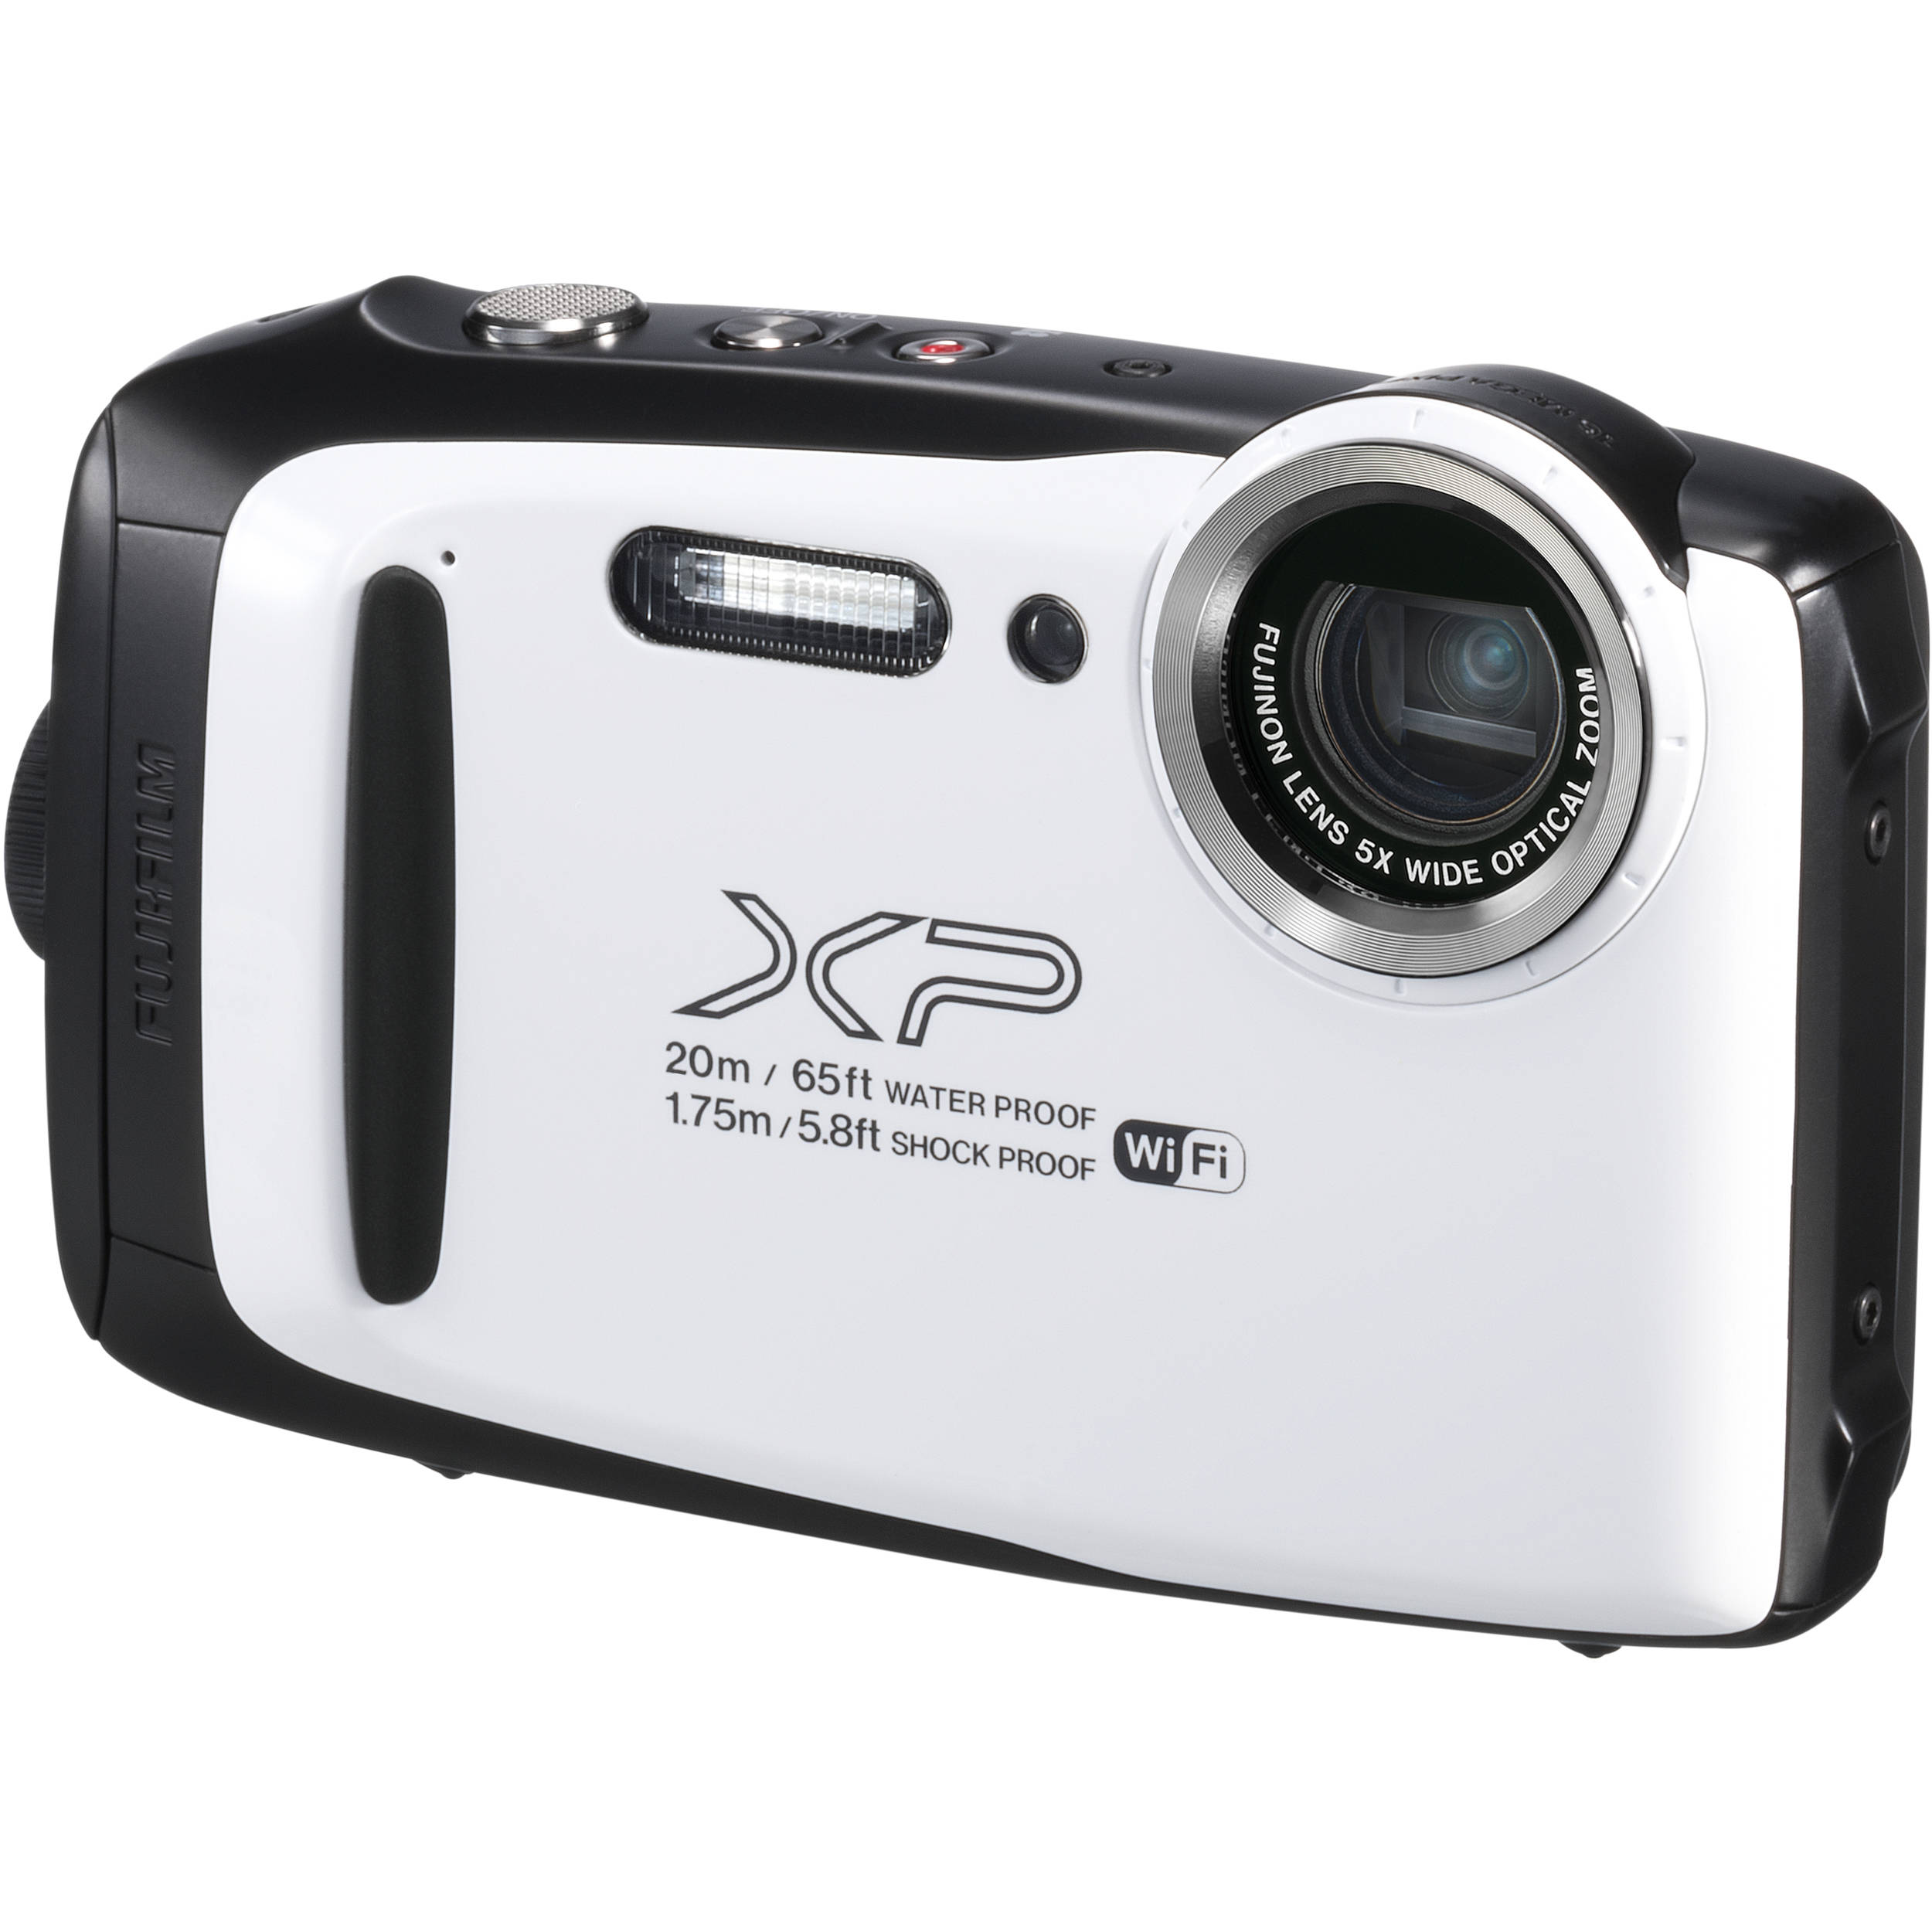 Image of Fujifilm Finepix XP130 Digital Cameras - White